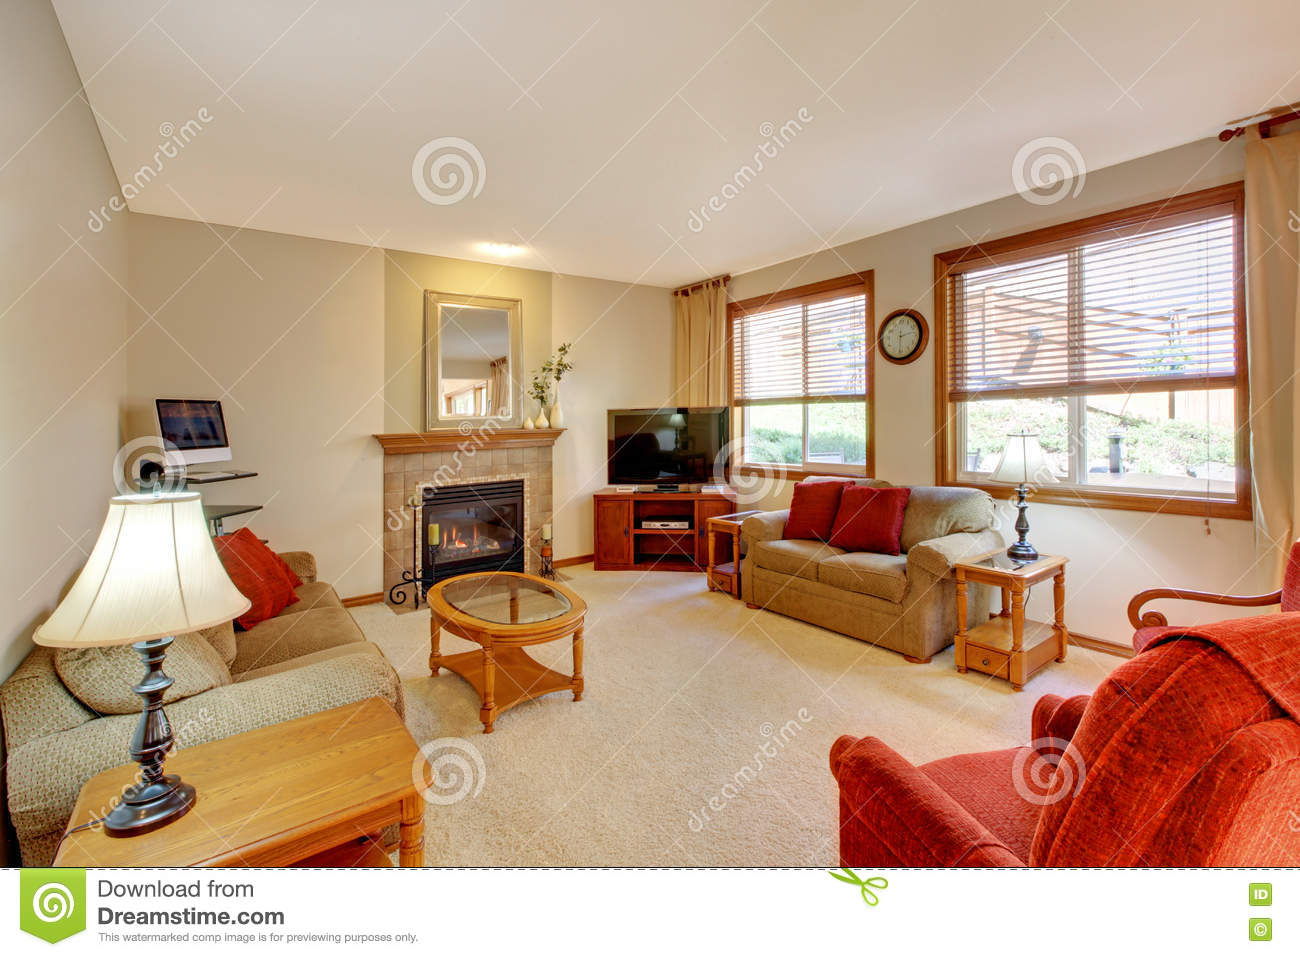 Living Room With Red Furniture House Interior Peach And Red Living Room With Fireplace And Red